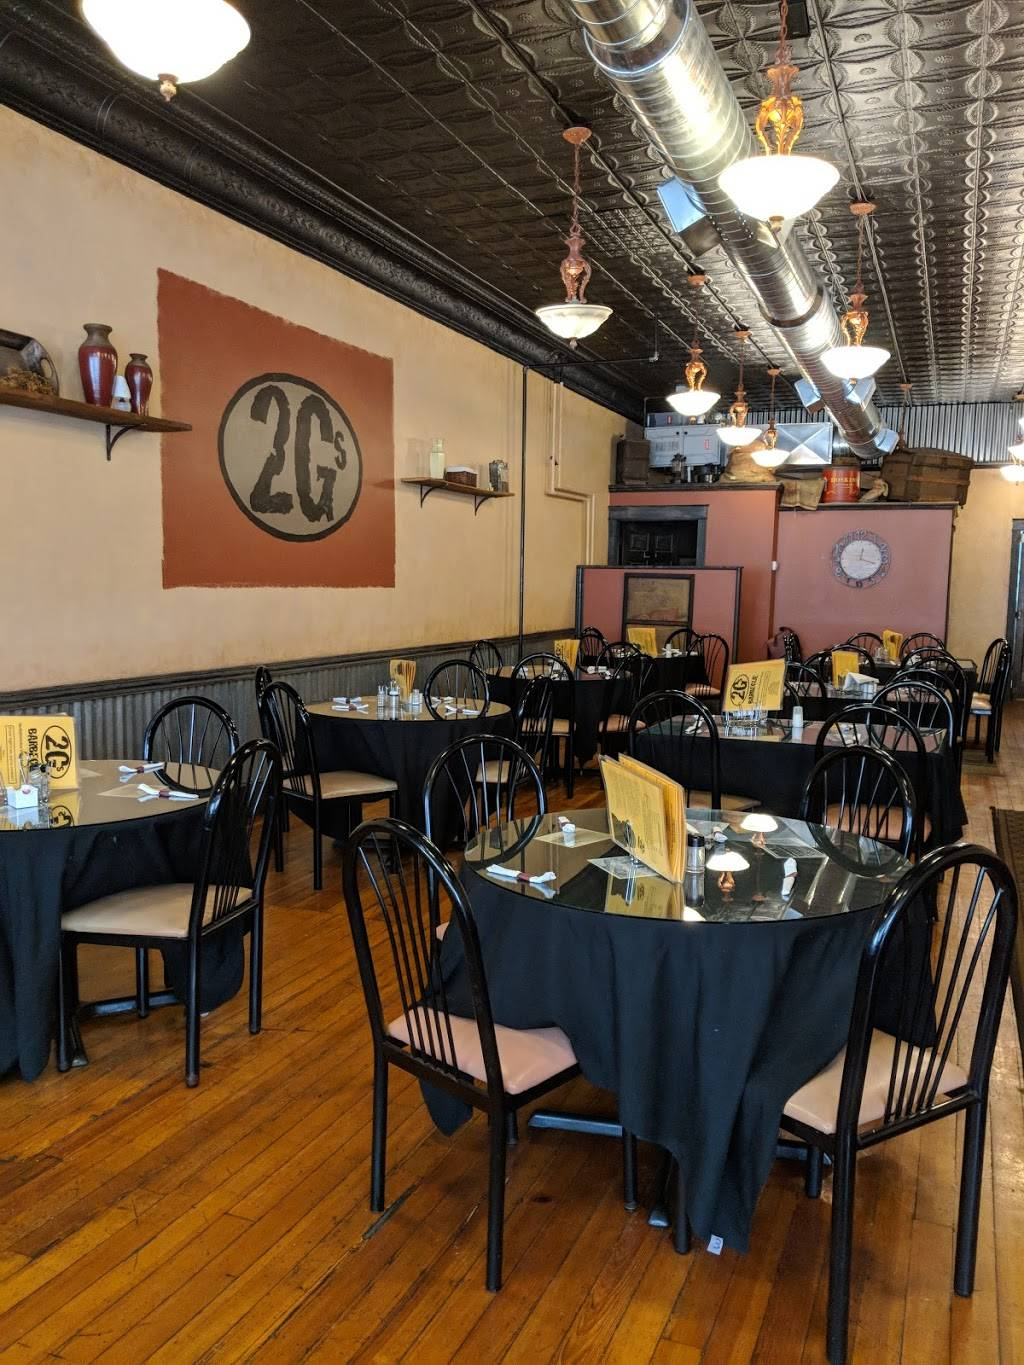 2 Gs Barbecue | restaurant | 116 N Main St, Bellefontaine, OH 43311, USA | 9372108429 OR +1 937-210-8429